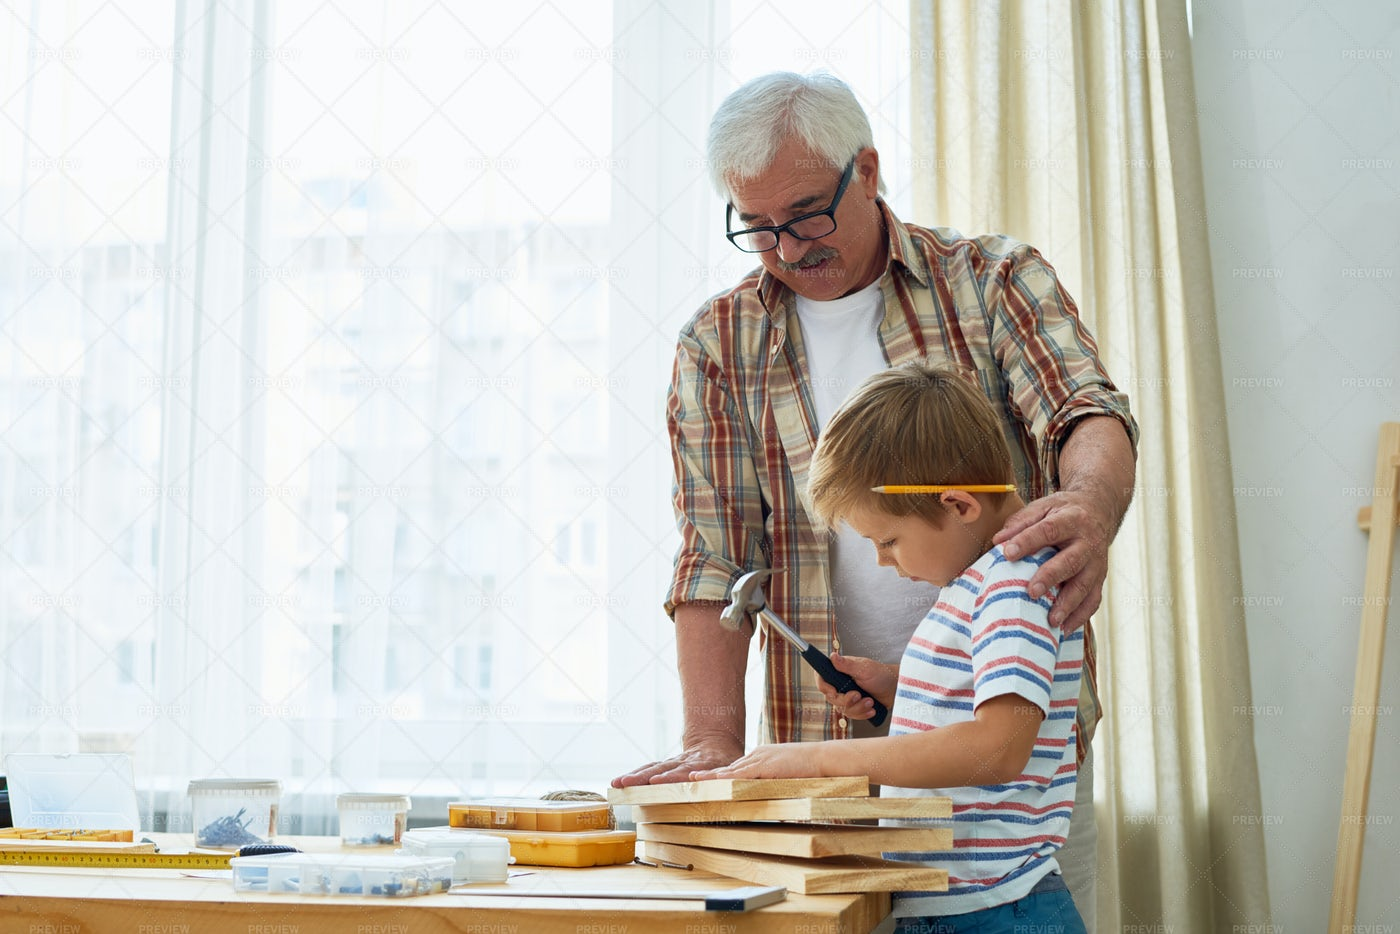 Loving Grandfather And Little Boy...: Stock Photos